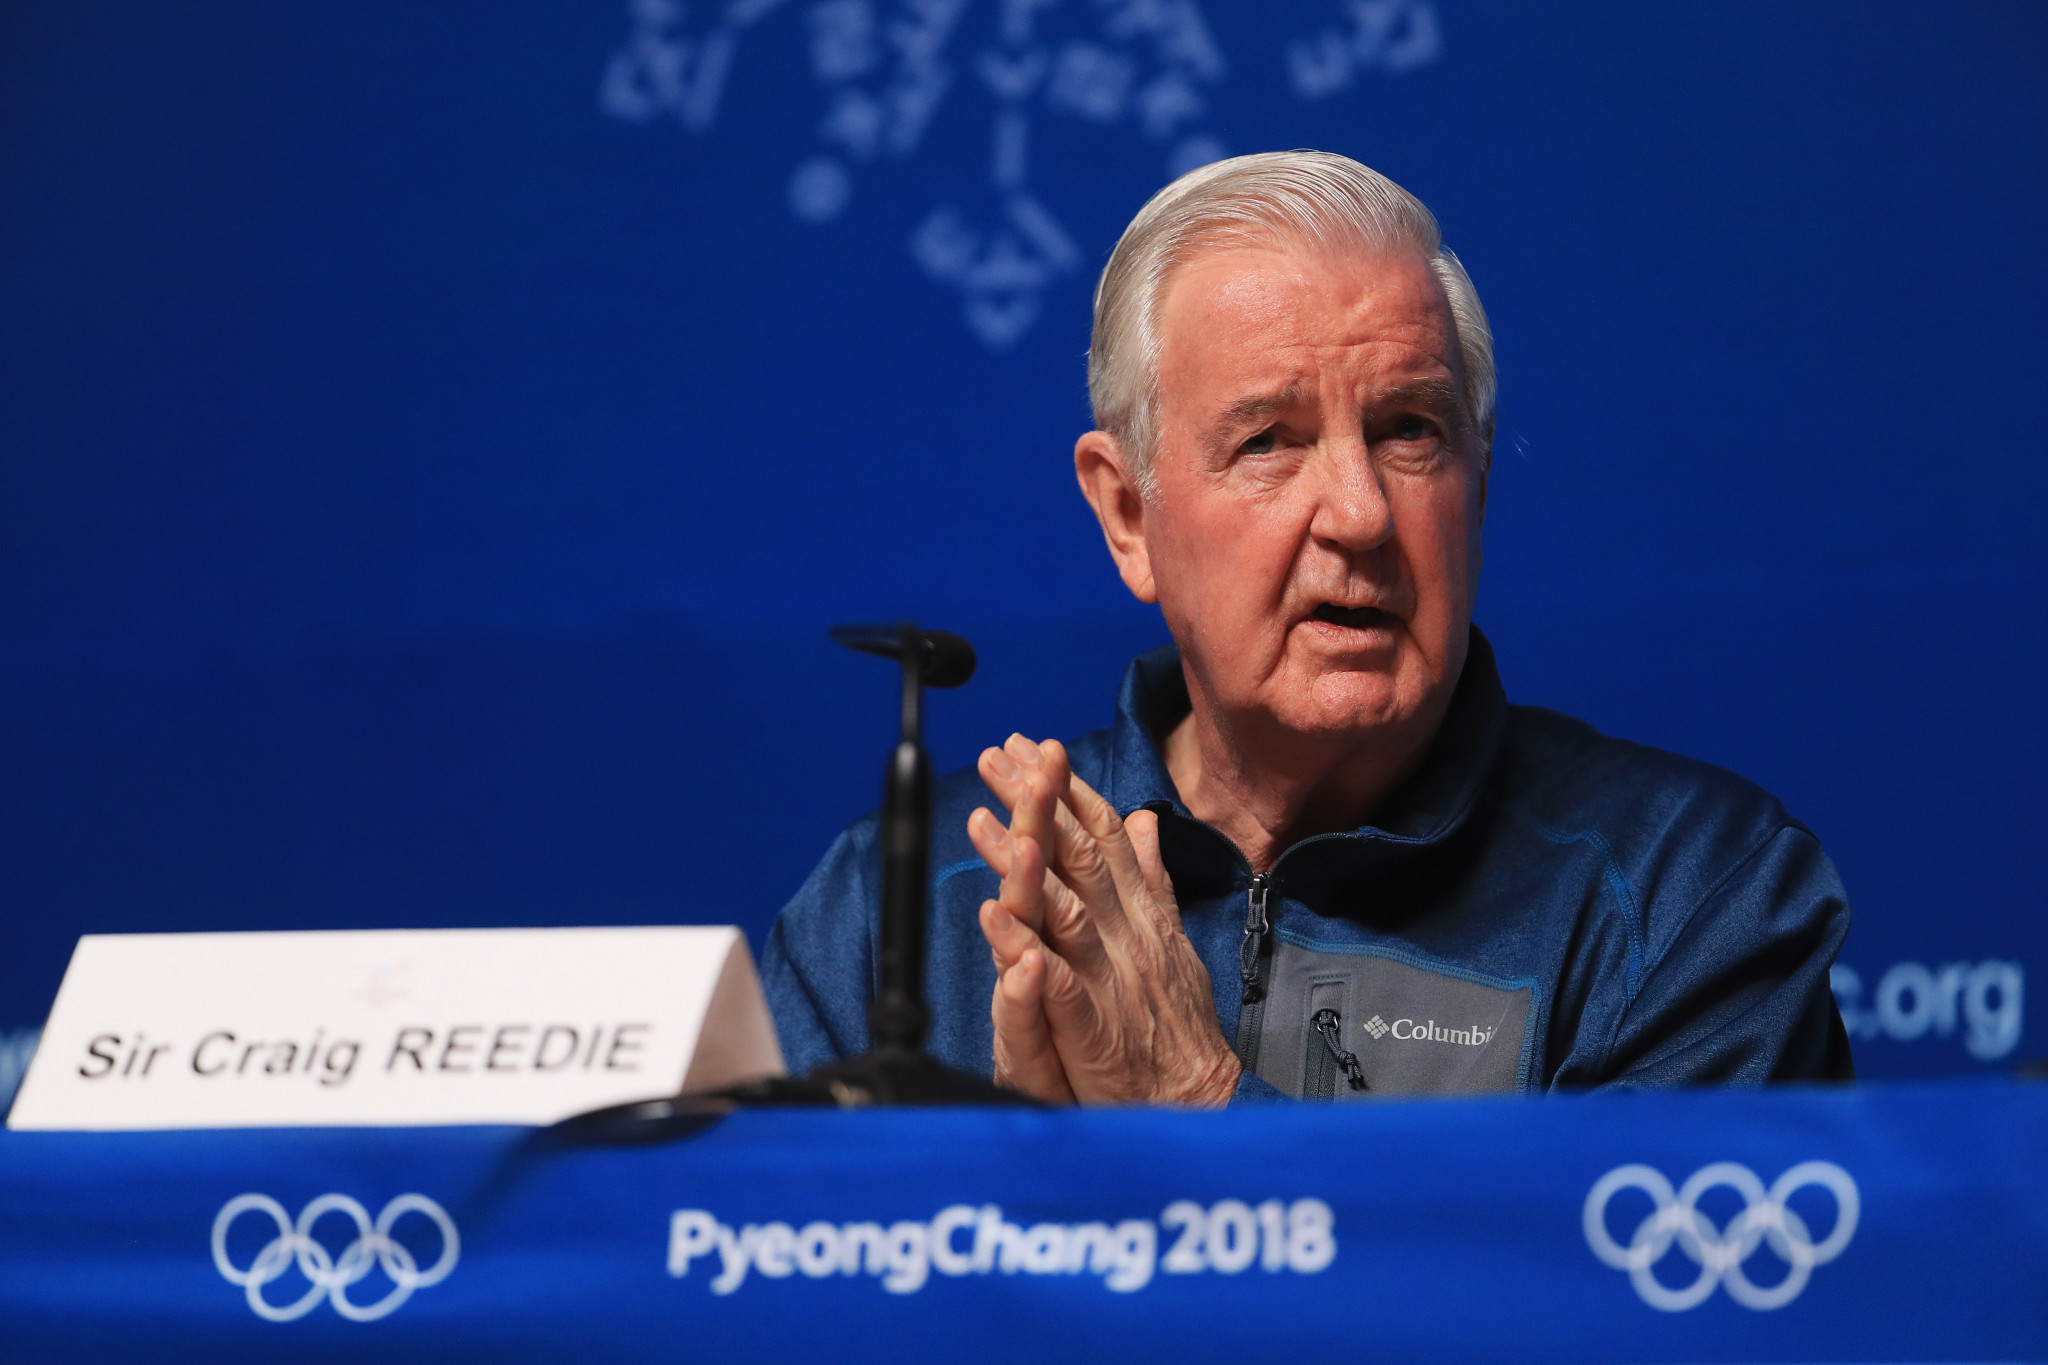 Sir Craig Reedie is set to be replaced by Witold Bańka ©Getty Images